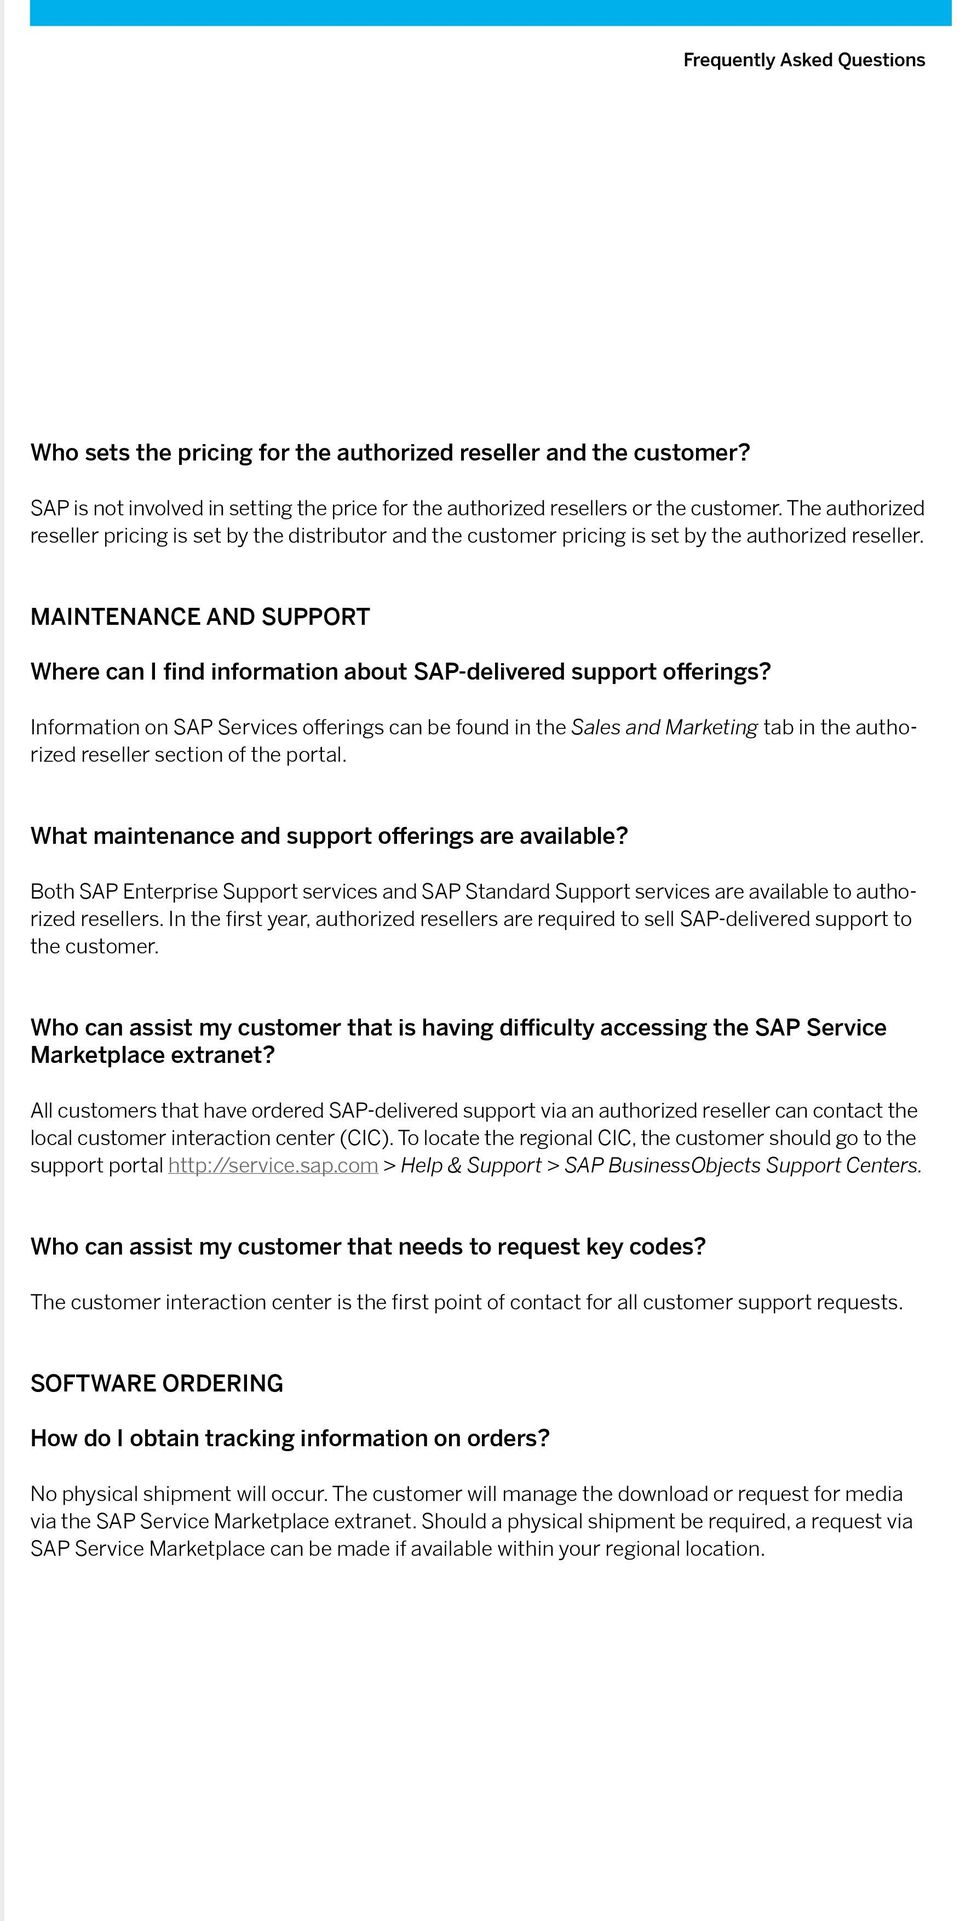 Maintenance and Support Where can I find information about SAP-delivered support offerings?